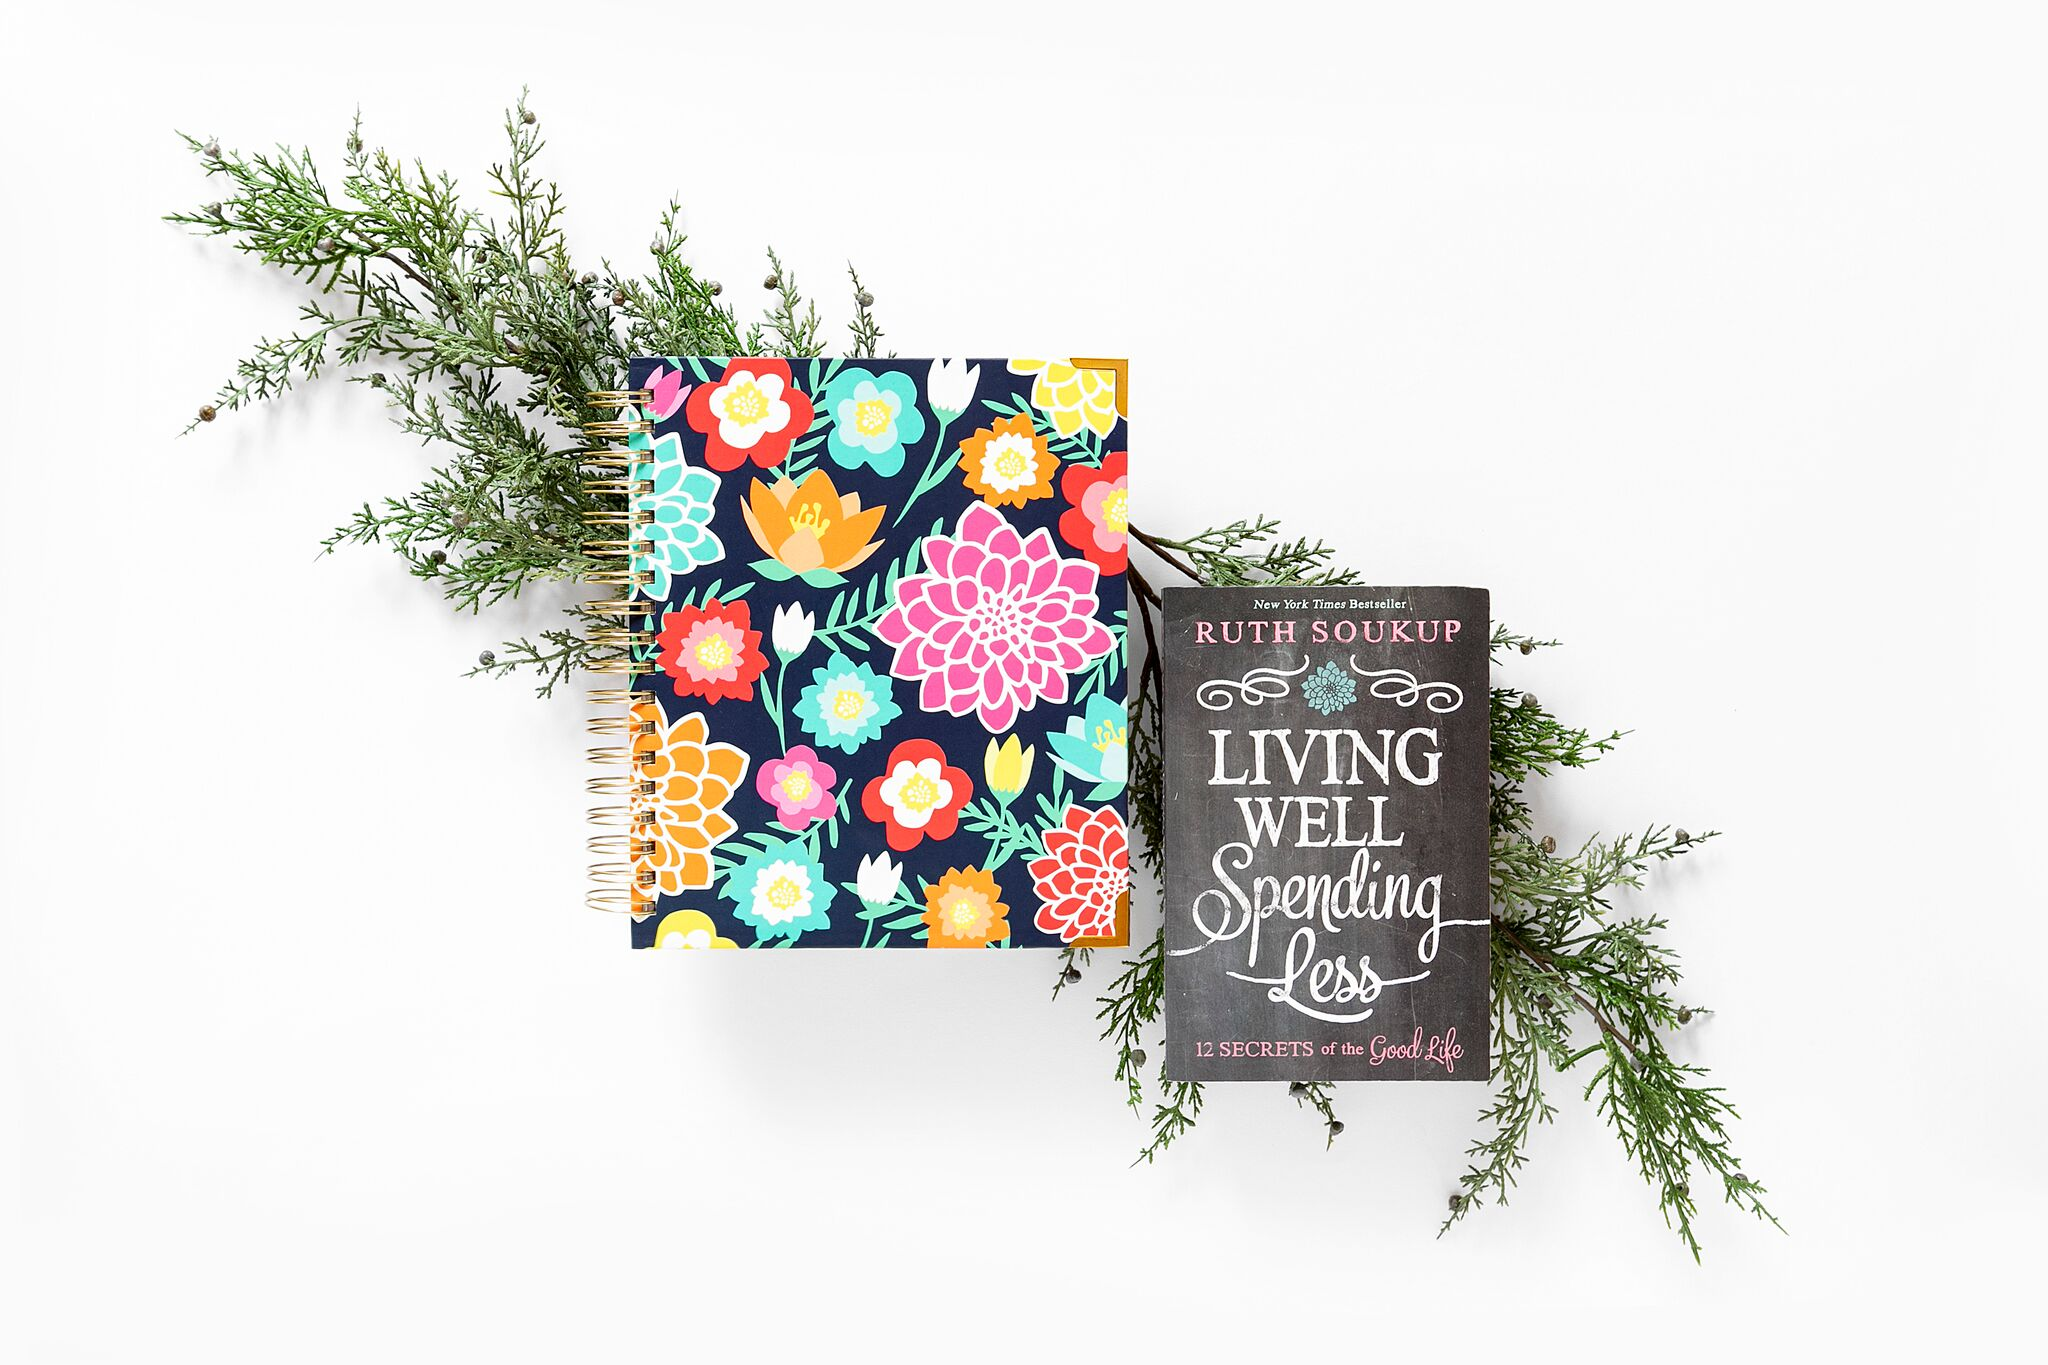 Christmas has come a little early! Our 12 Days of Christmas Sale is a chance to save 25% on some of the most popular books, bundles, accessories, and gifts in the Living Well Shop. You can also get free US shipping on all orders over $50!